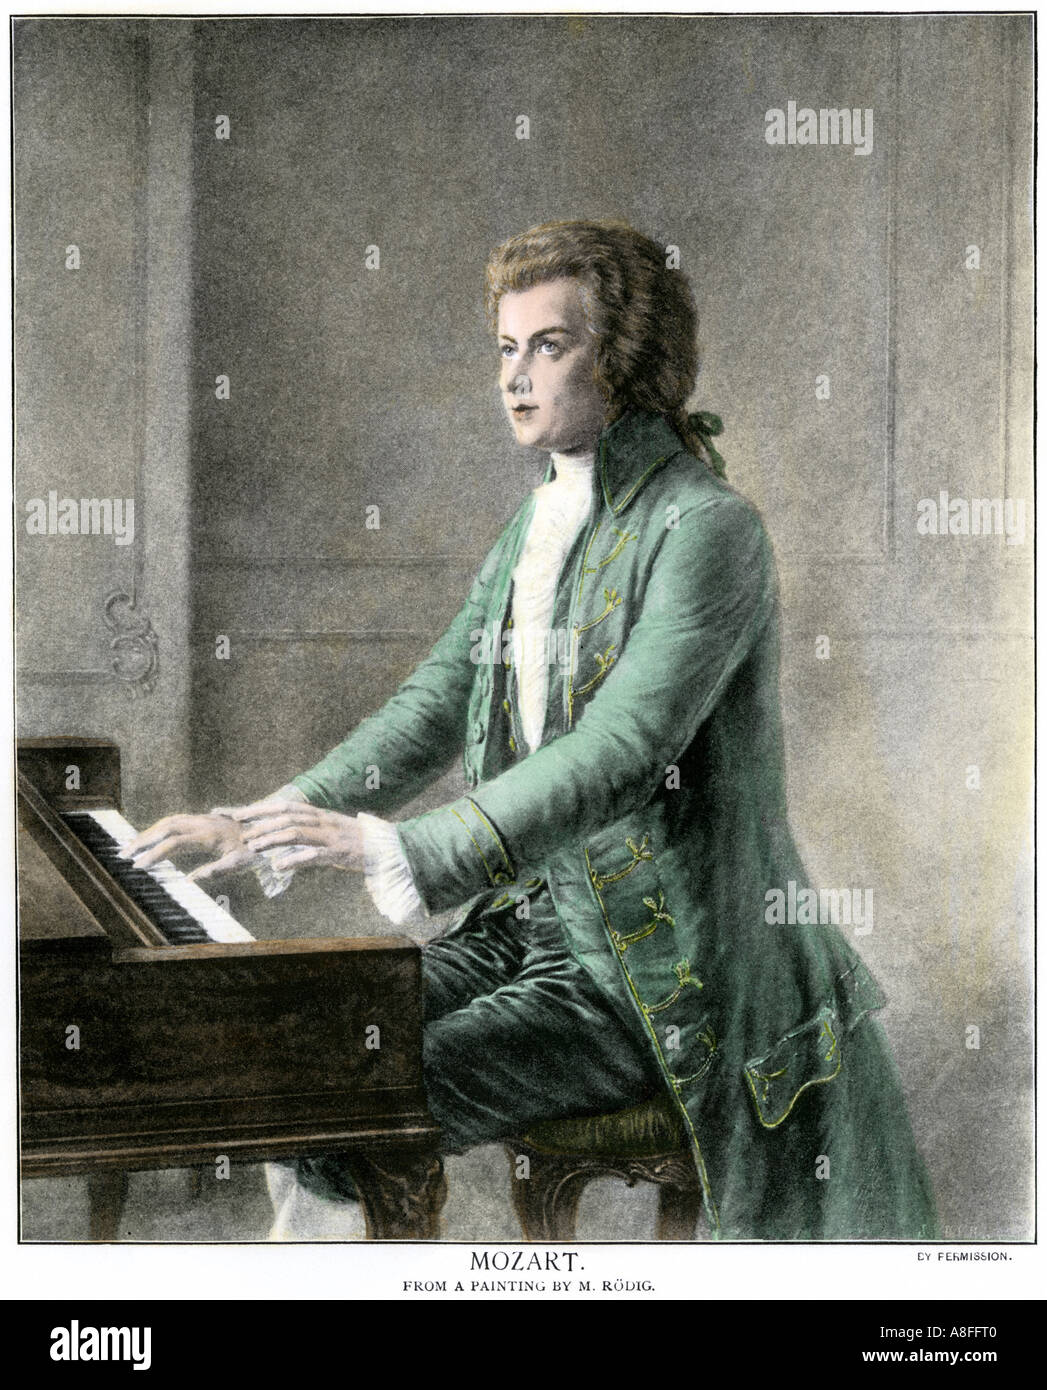 Wolfgang Amadeus Mozart at the keyboard. Hand-colored halftone of an illustration - Stock Image